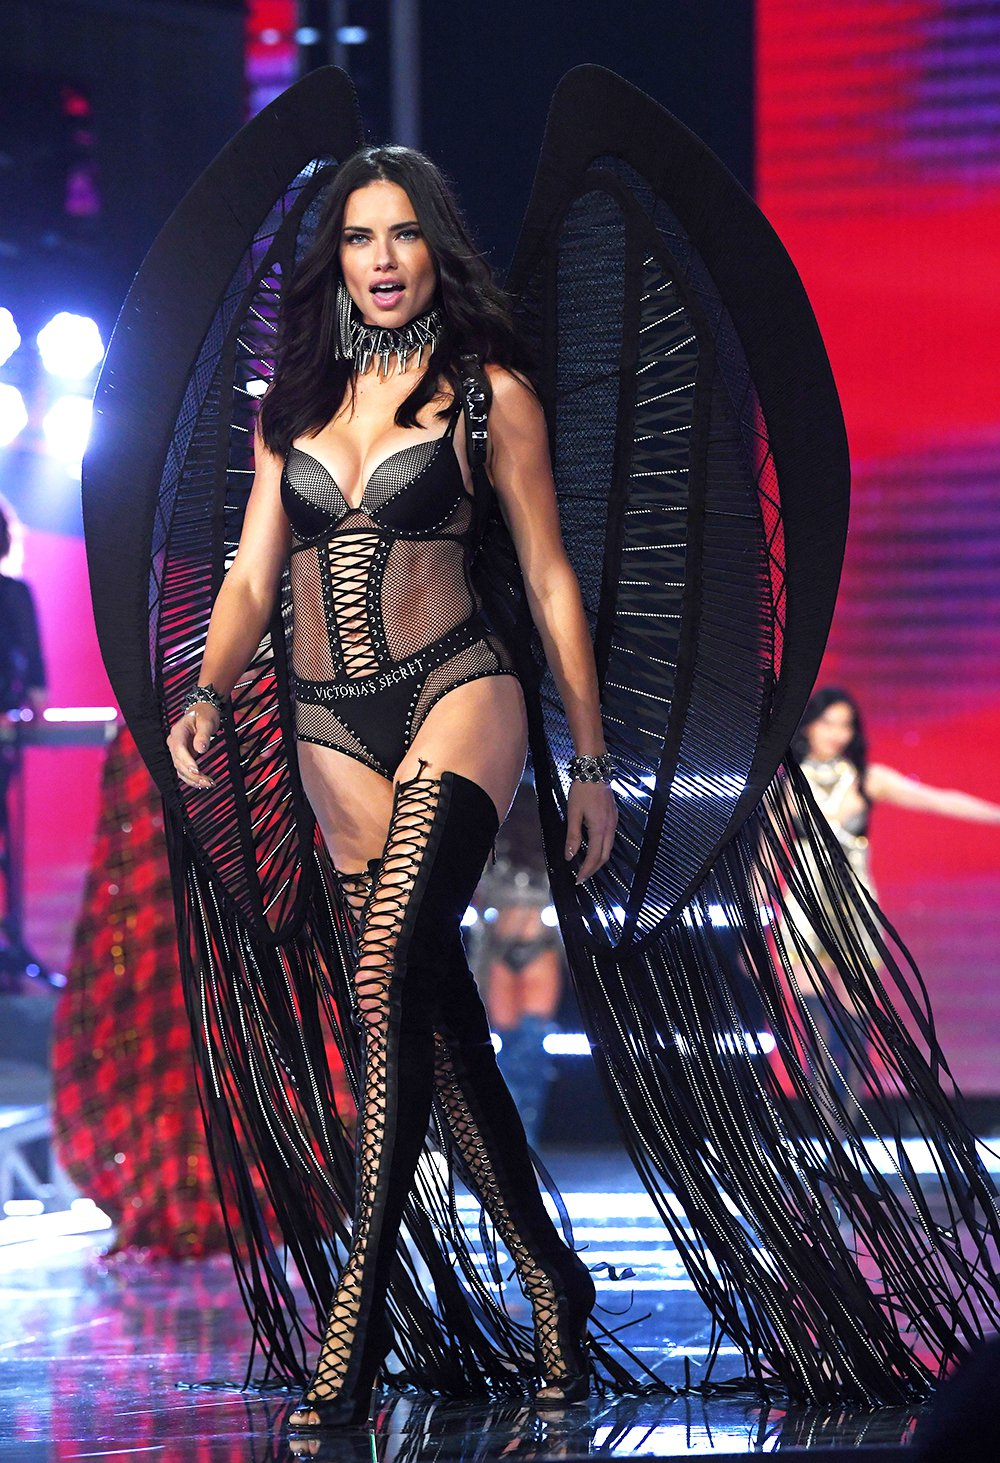 Adriana-Lima-Victorias-Secret-Fashion-Show-2017